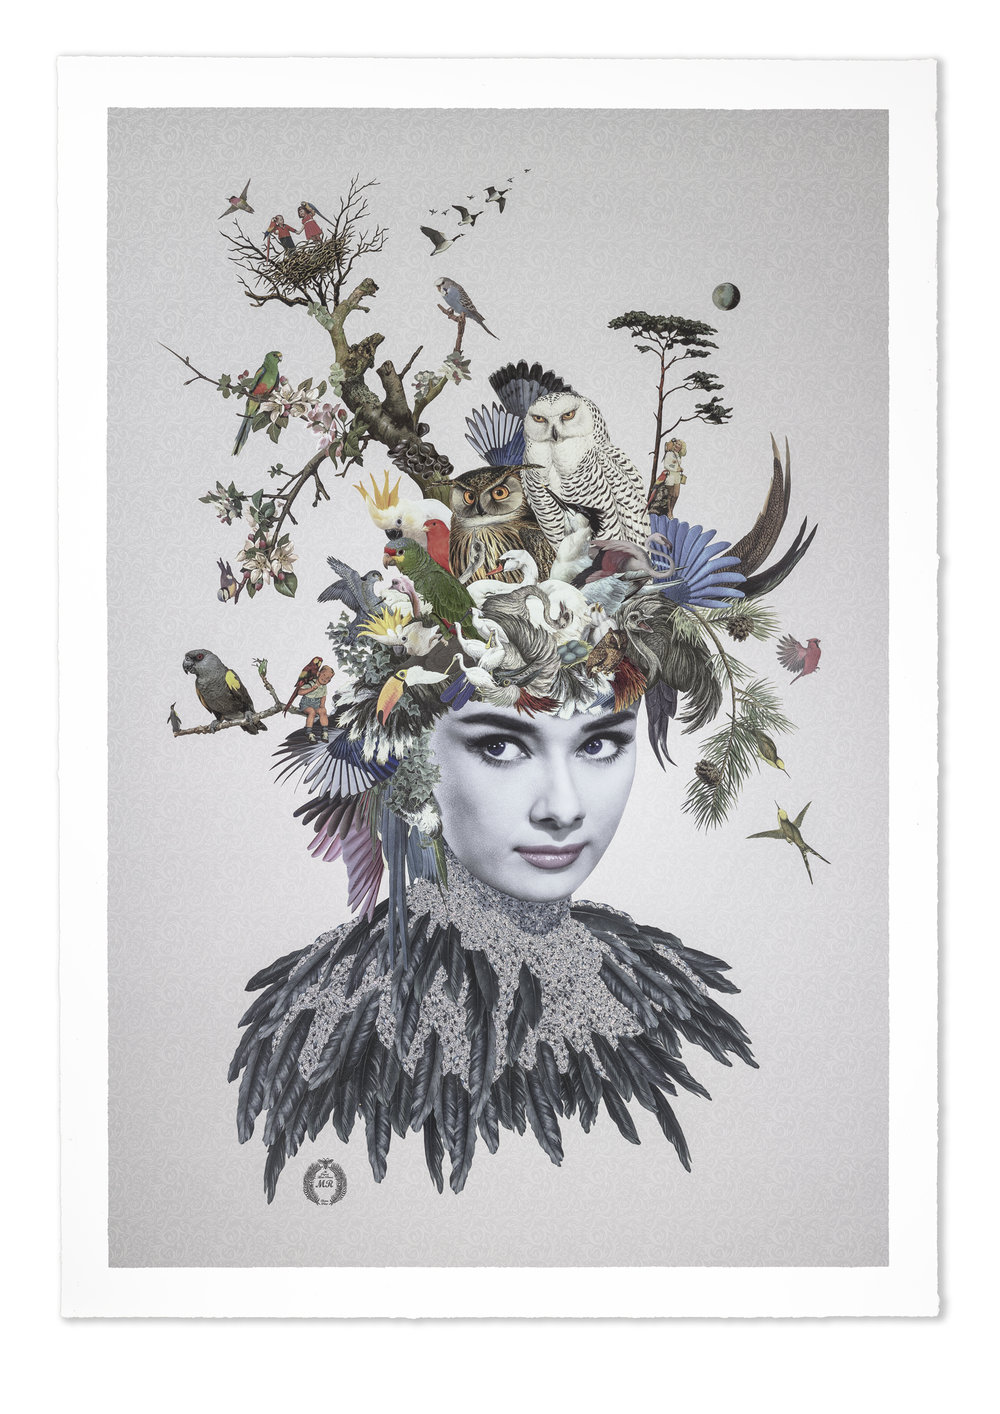 Lydia  was exclusively commissioned by English antiques expert and television presenter Jonty Hearnden.   POA - contact  info@jontyhearnden.co.uk  for more information  70 x 100cm Giclee and Screenprint with Gloss Varnishes and French Glass. Edition of 25 on Minuet torn to the edge